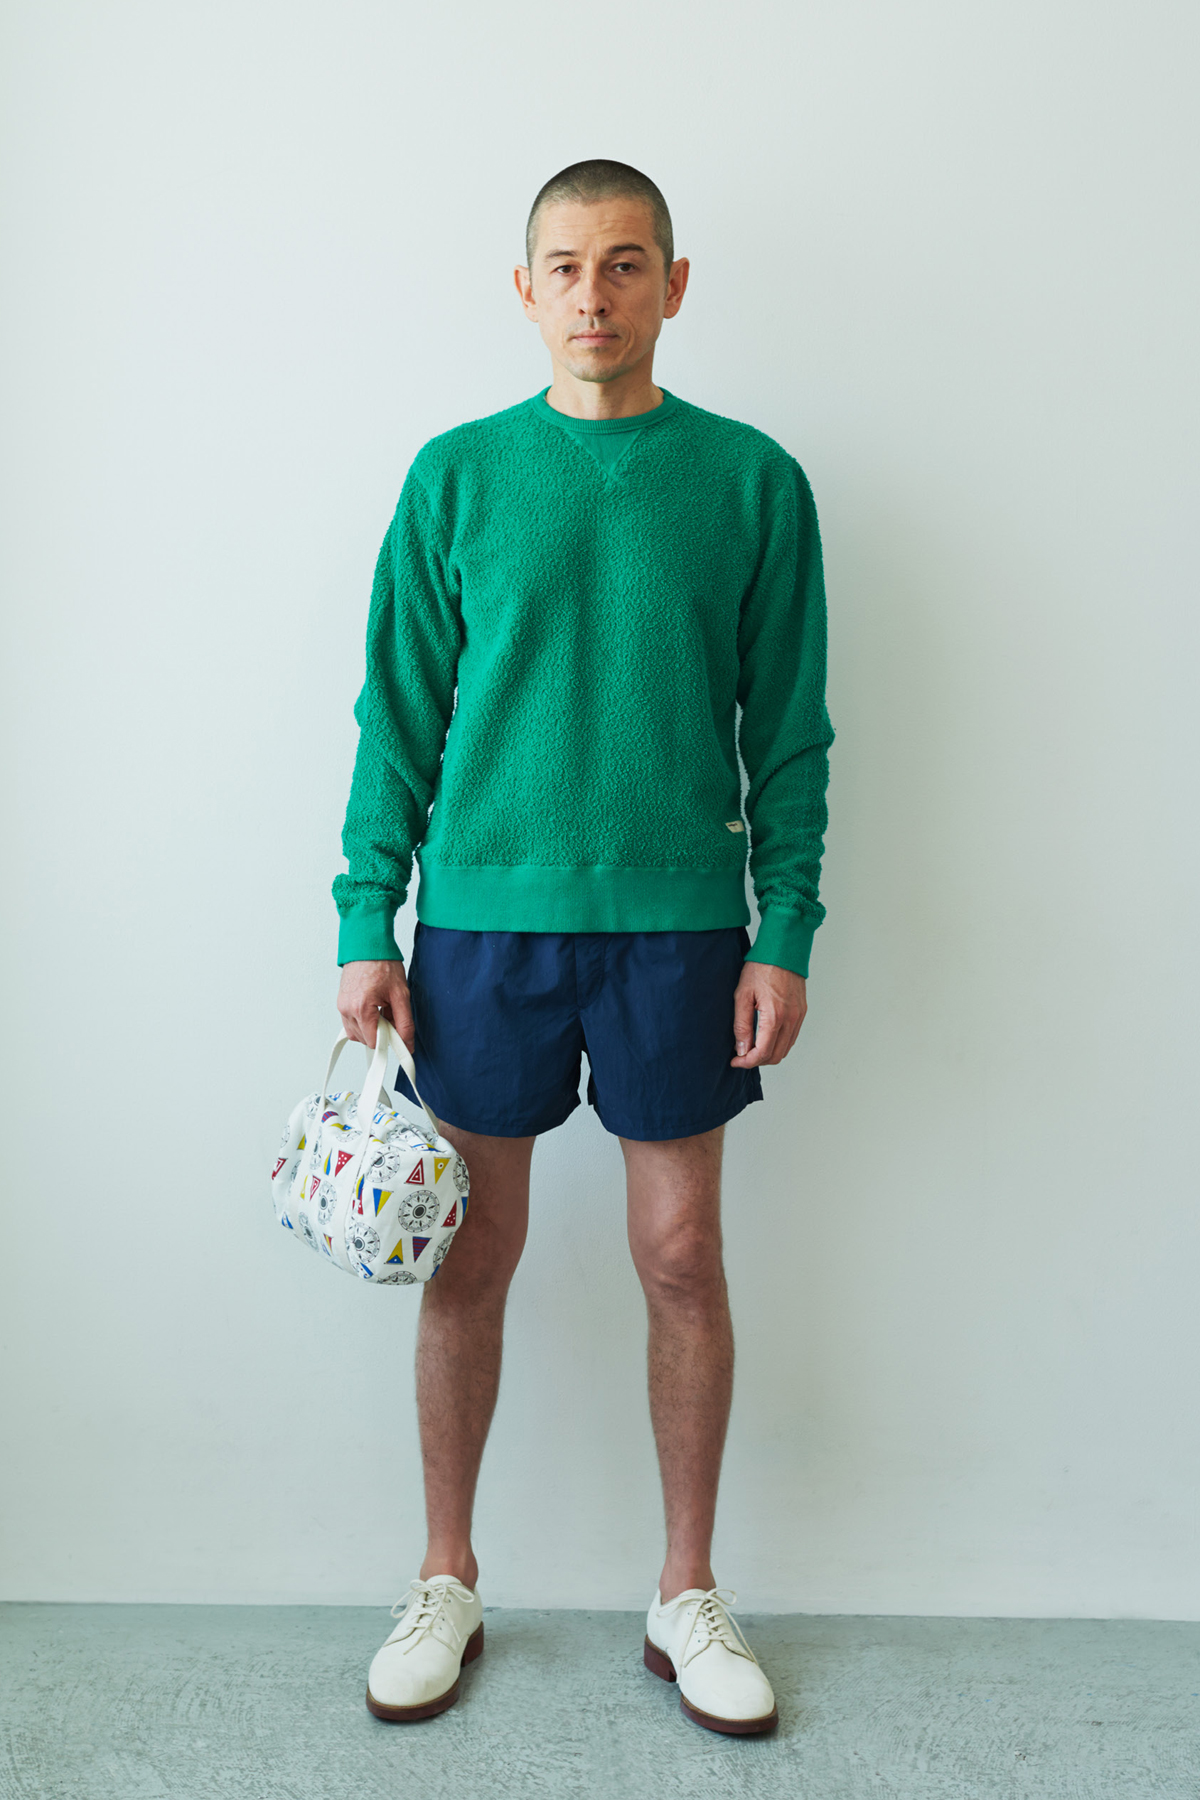 NAISSANCE 2015 Spring/Summer Lookbook